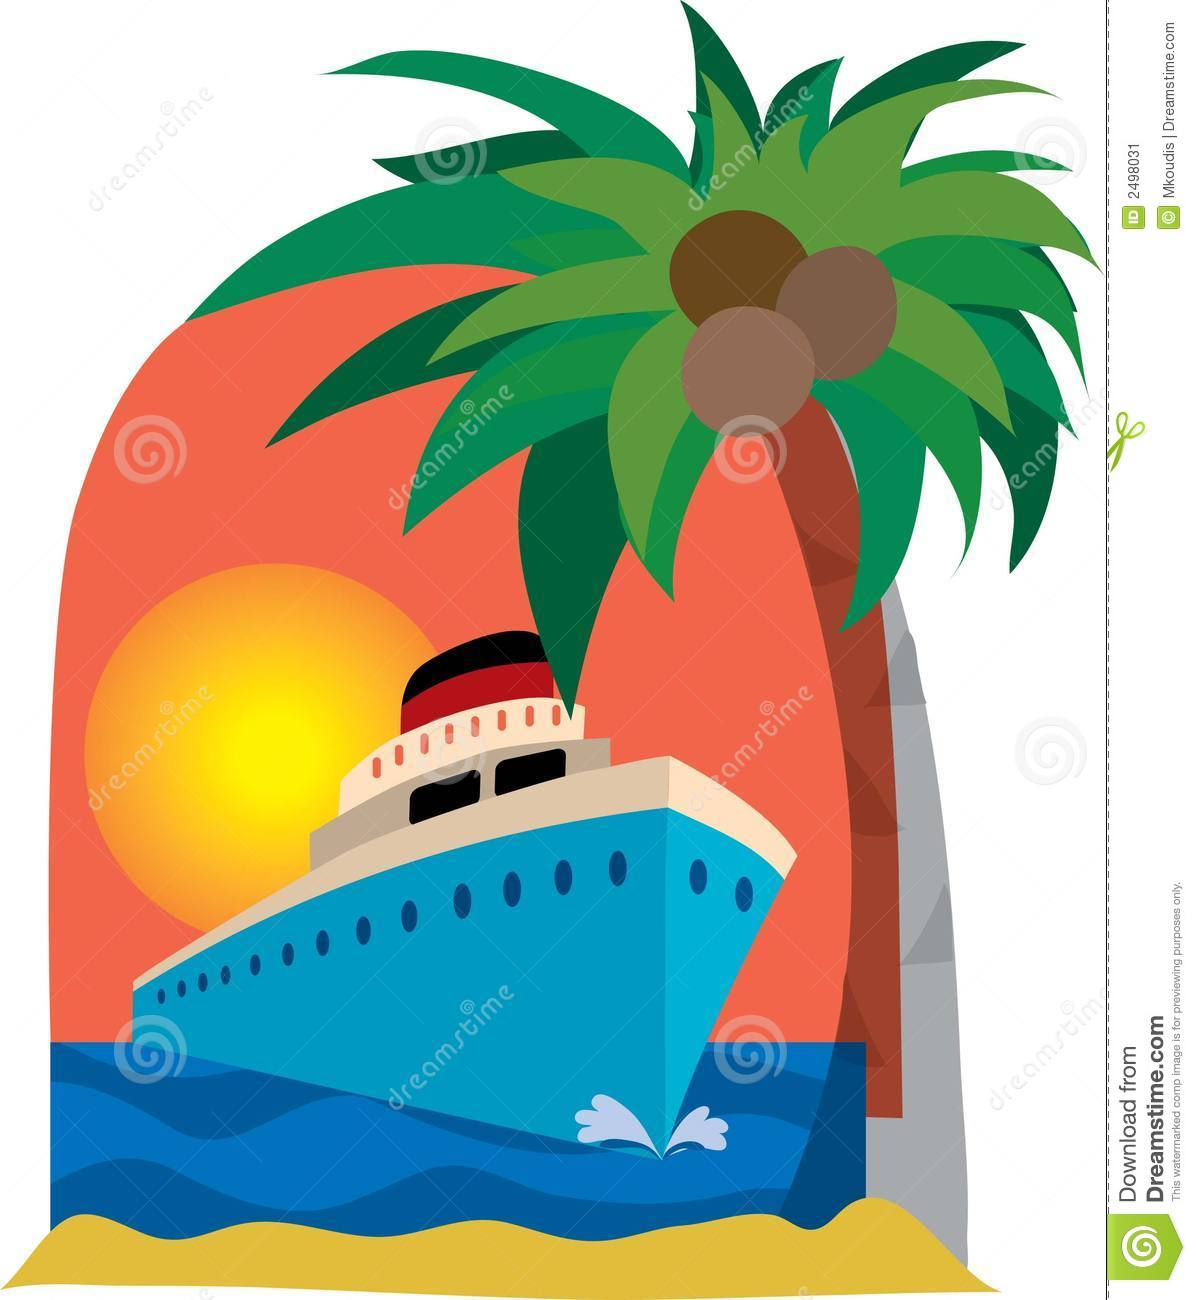 Cruise ship stock vector. Image of boat, ocean, vessel - 2498031